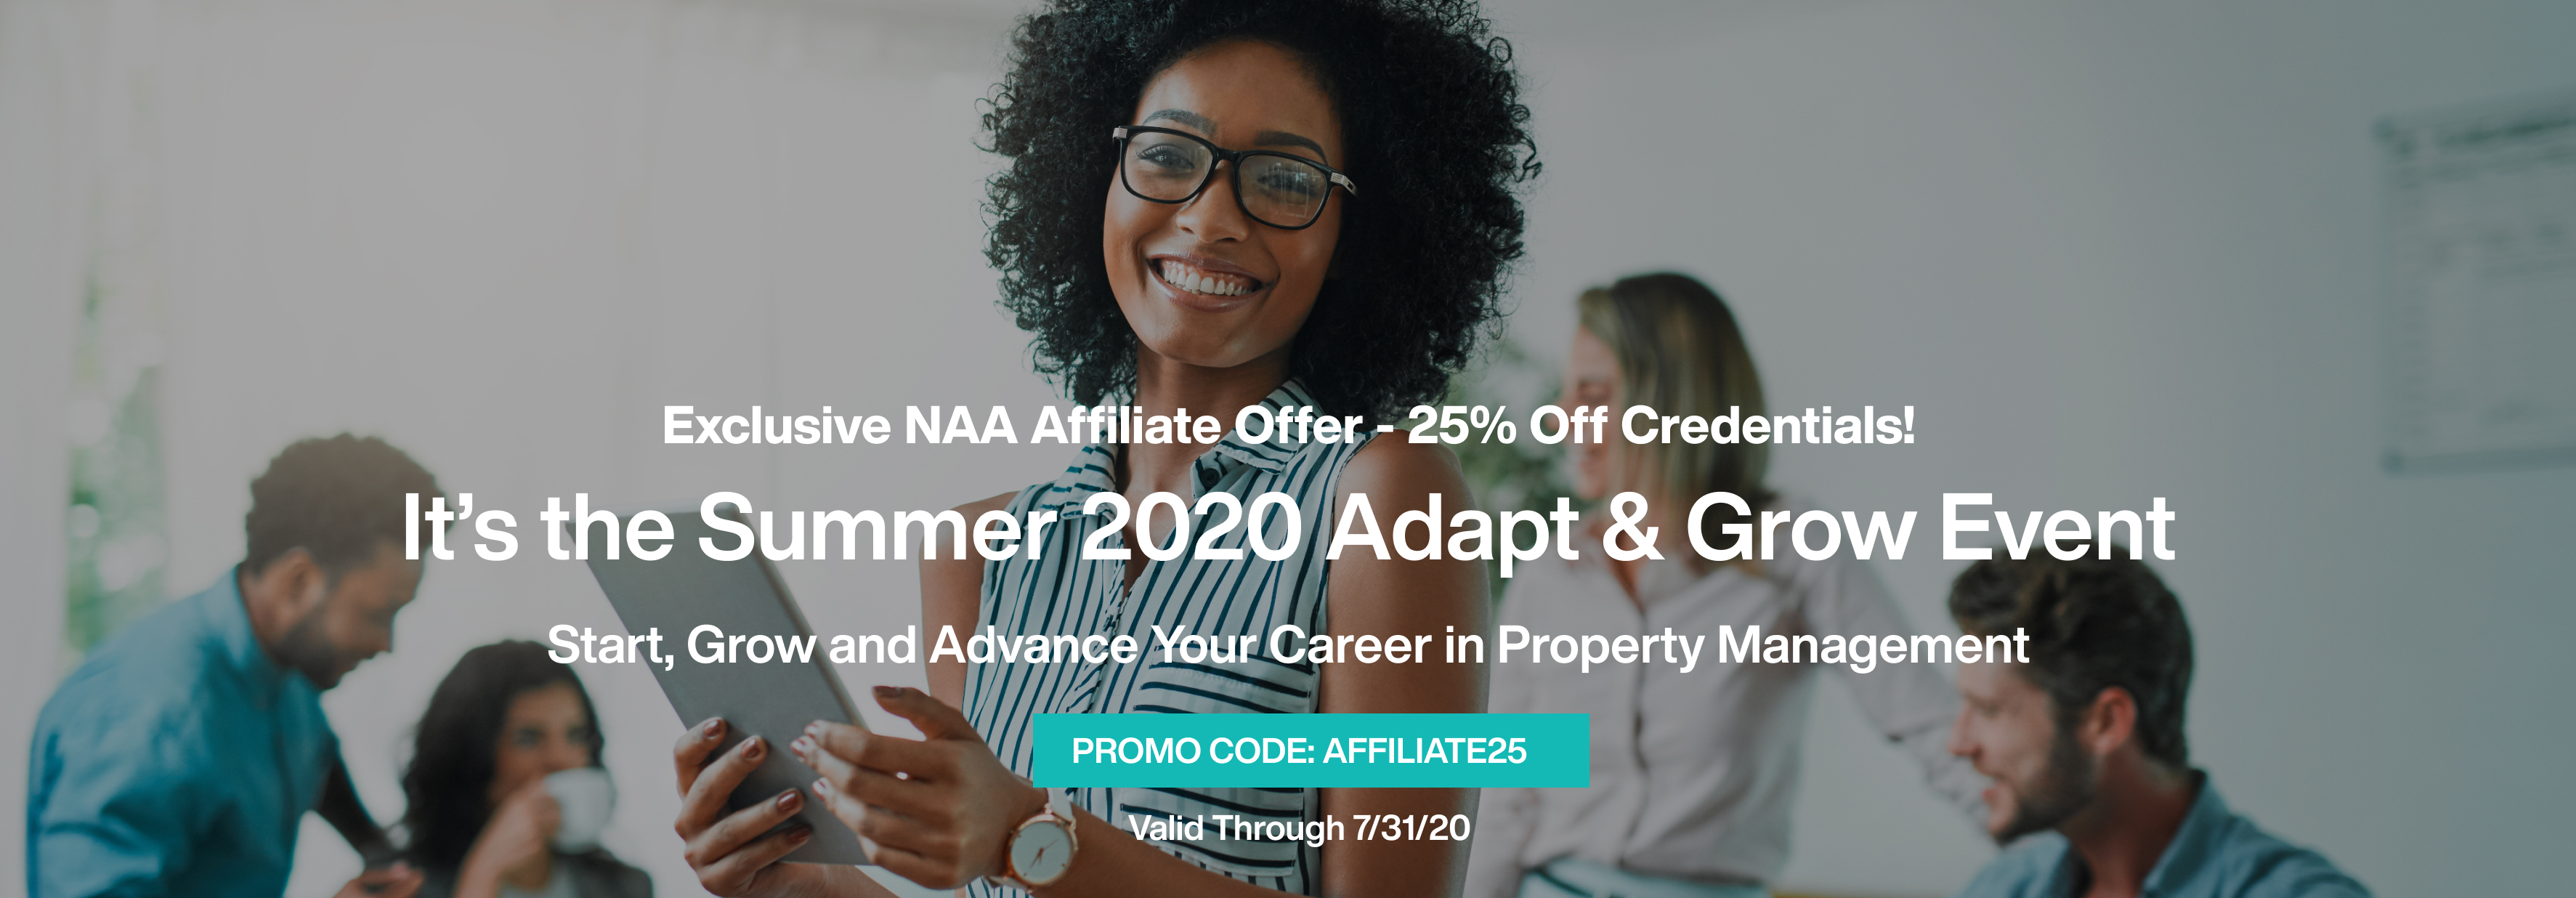 exclusive naa affiliate offer - 25% off credentials. promo code: affiliate25 valid through 7/31/2020